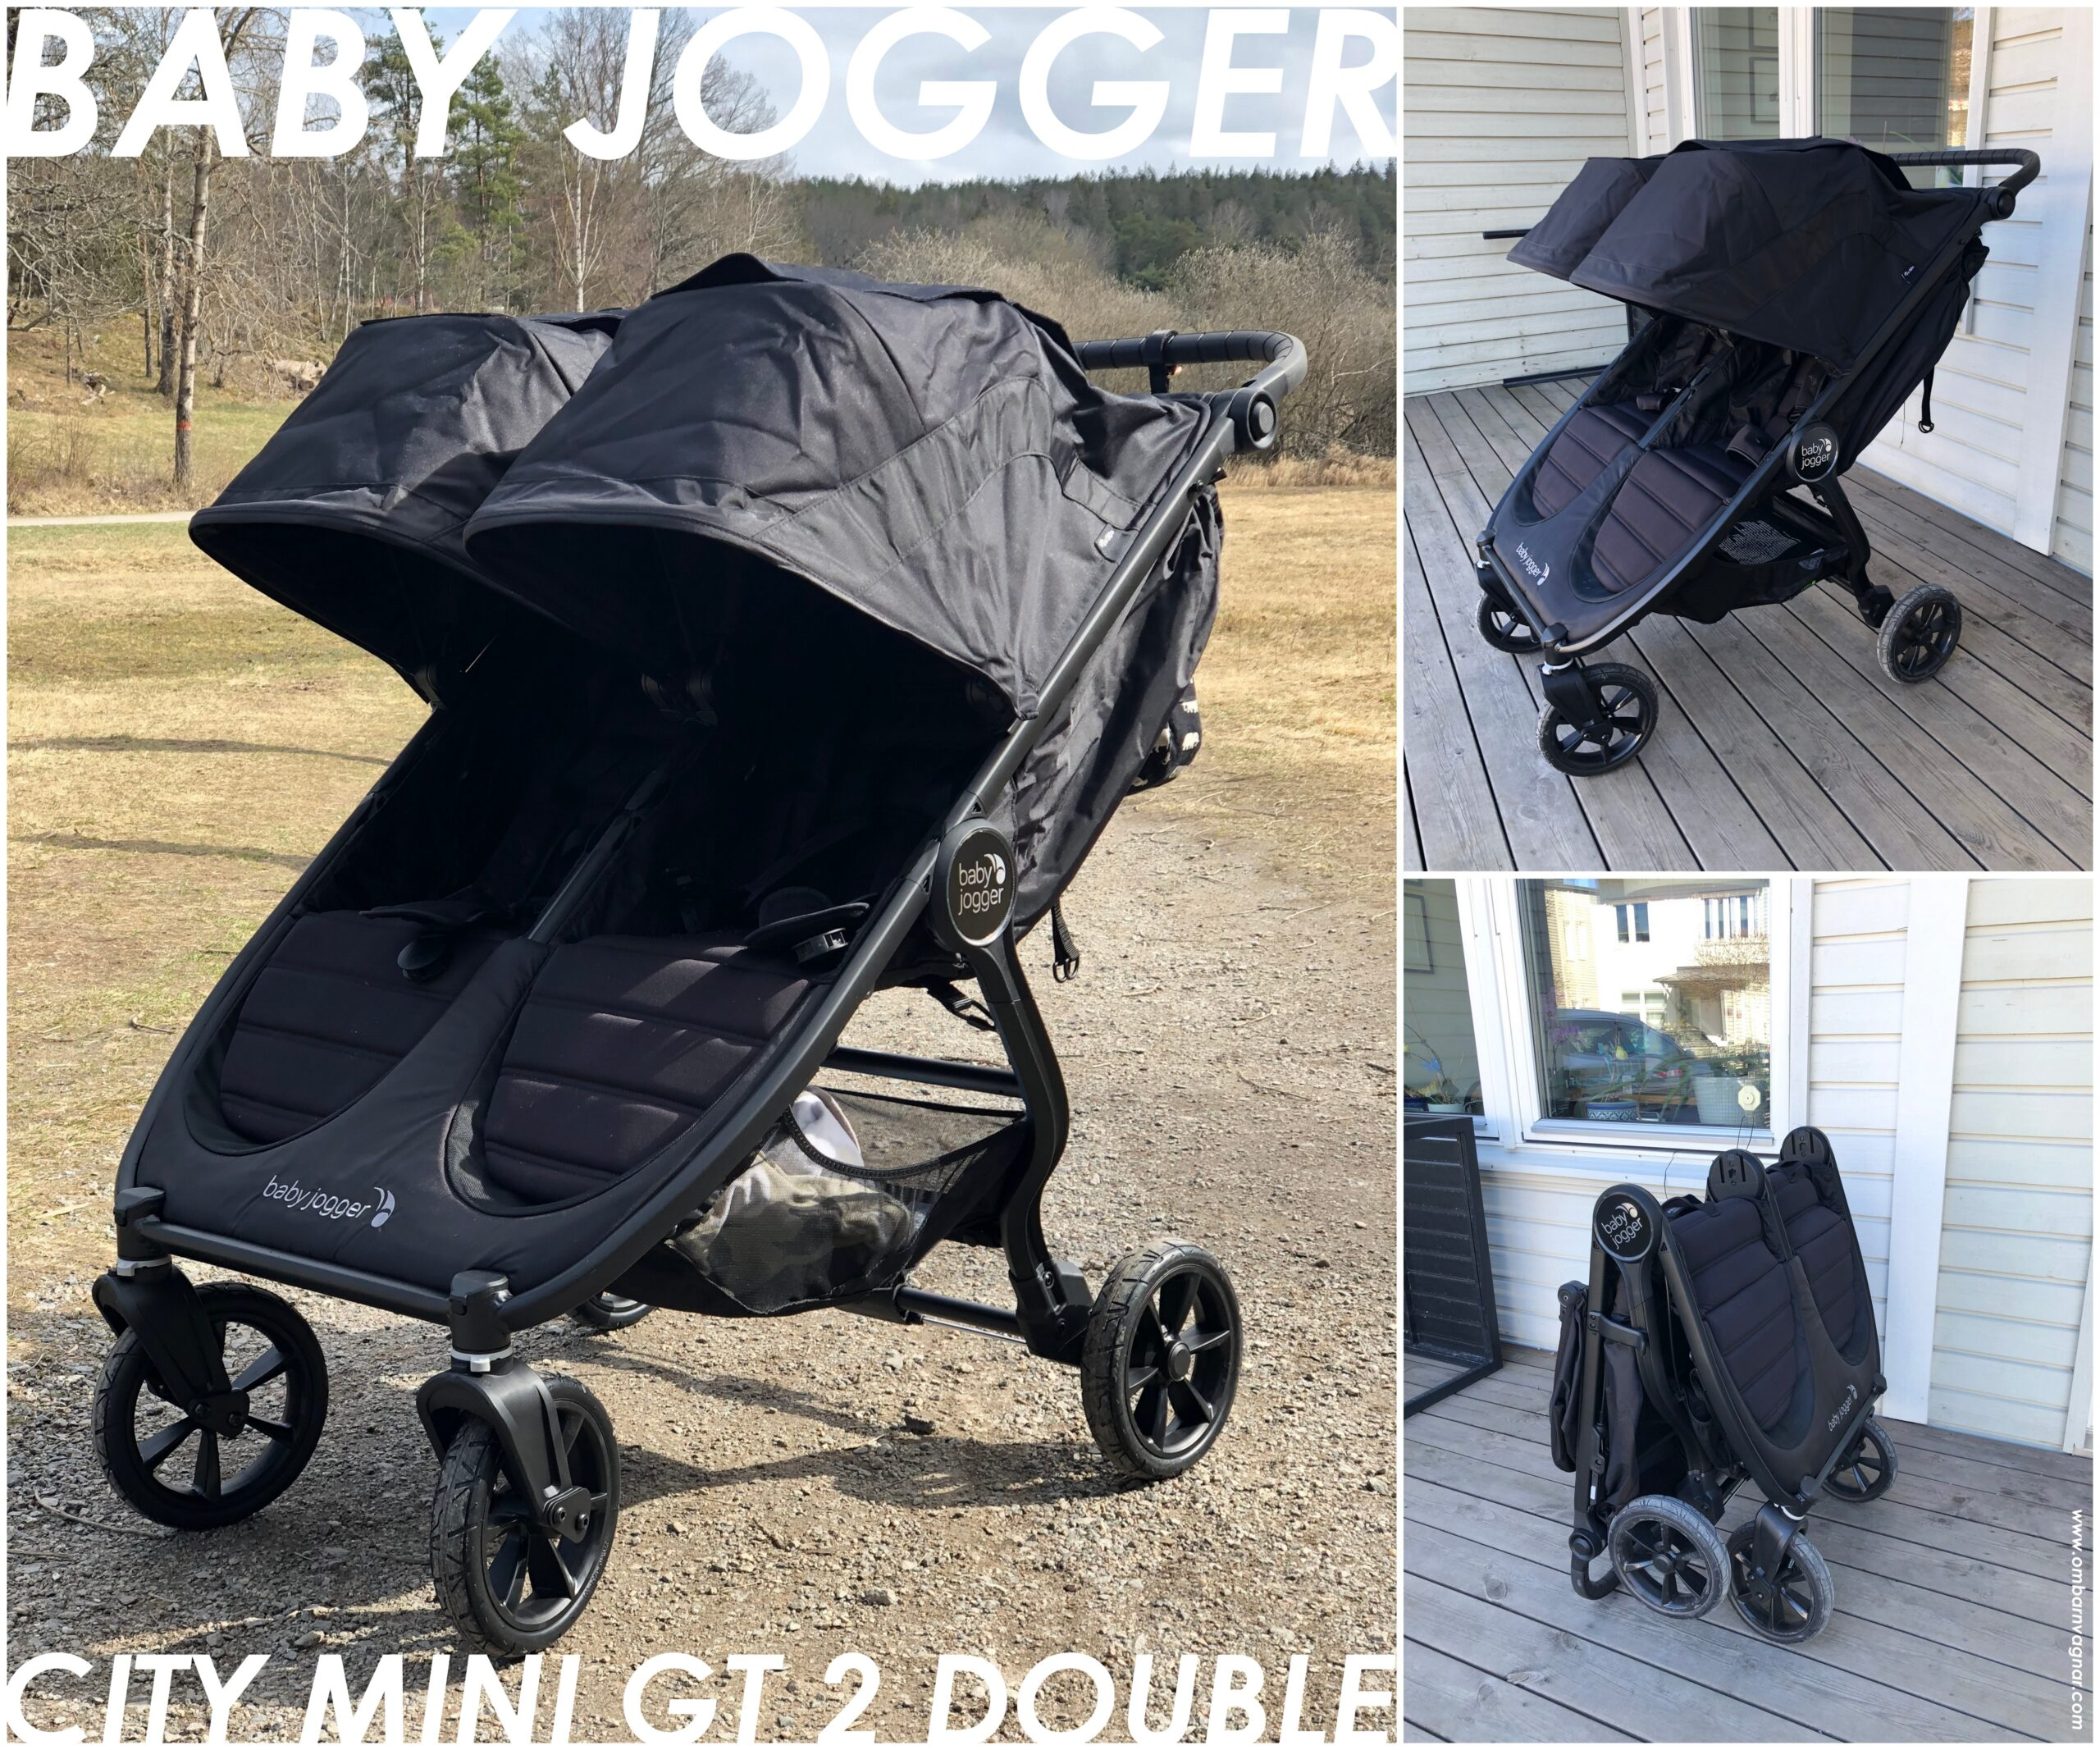 Recension av Baby Jogger City Mini GT 2 Double